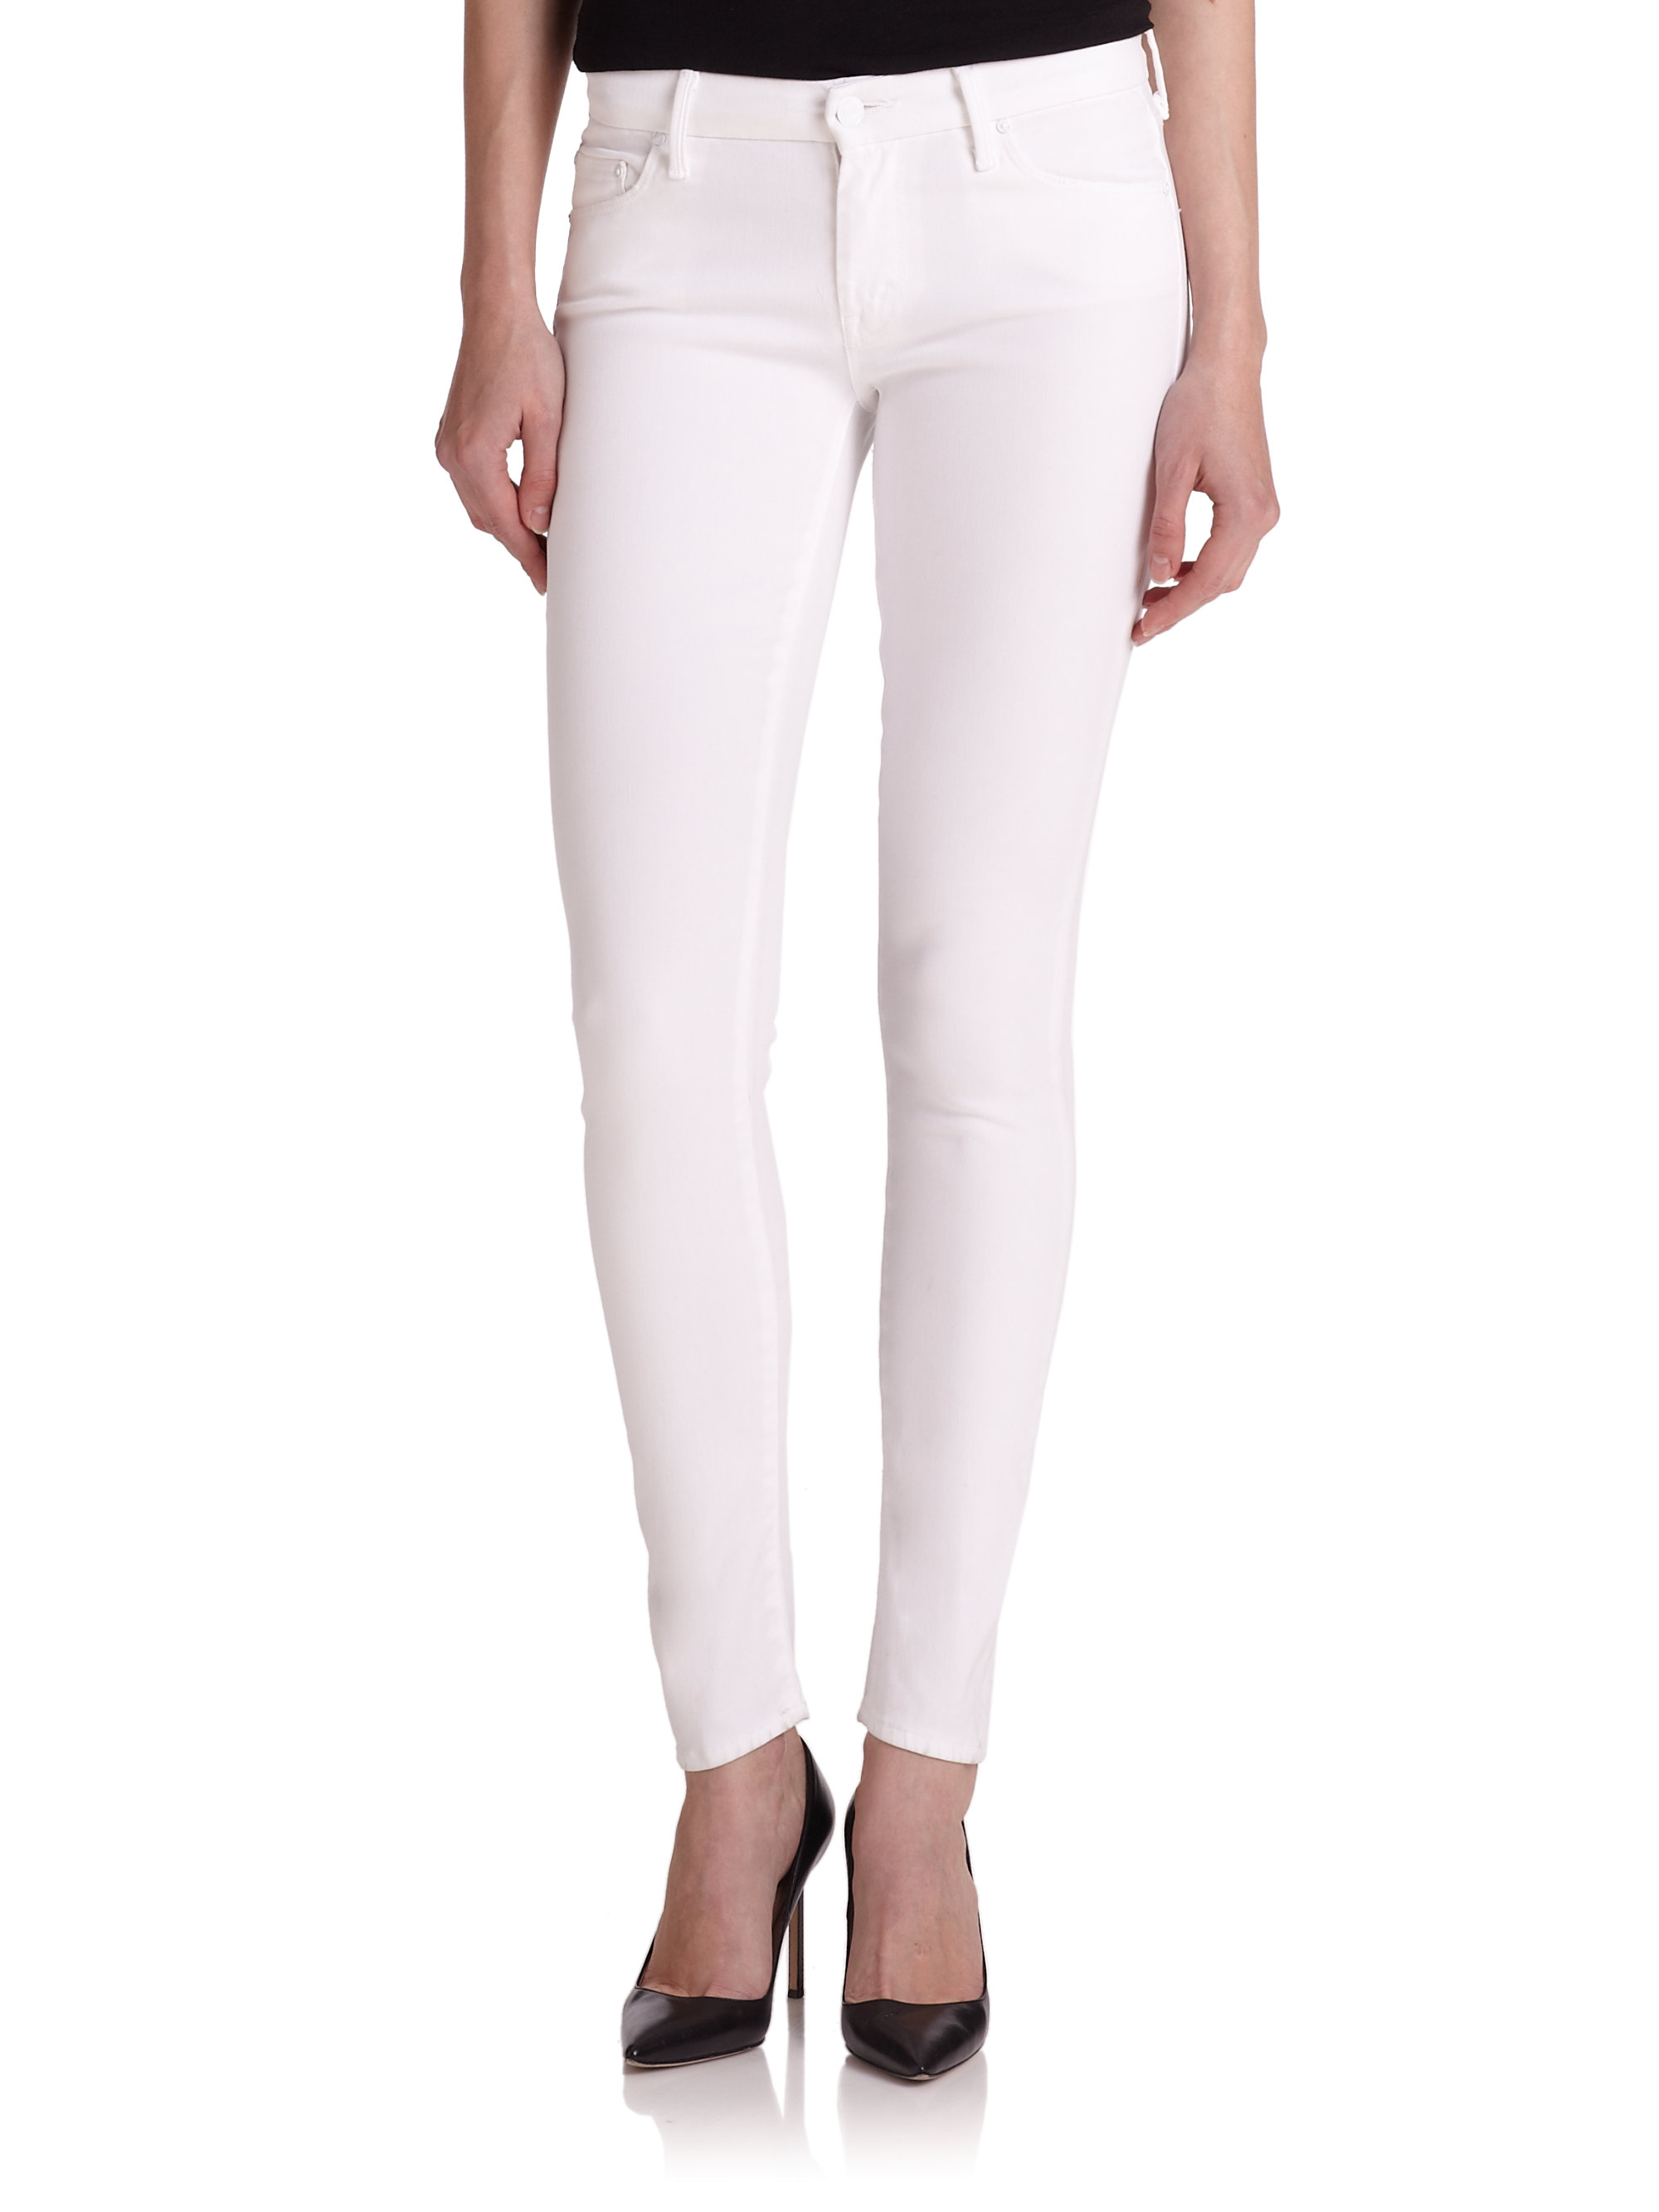 e9a6e87bef3fd Lyst - Mother The Looker Skinny Jeans in White